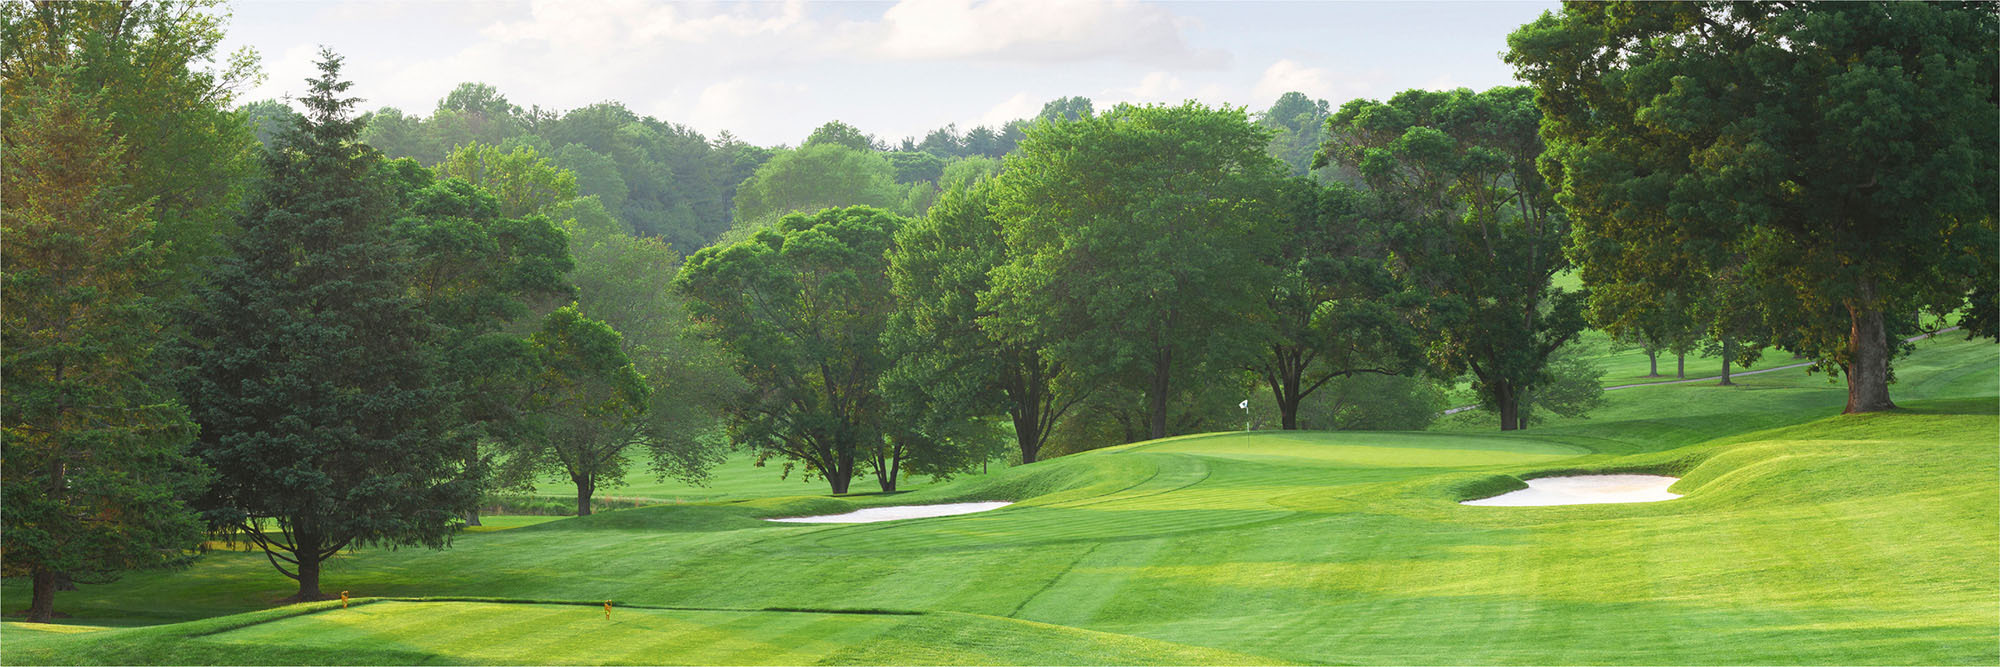 Golf Course Image - Hillendale Country Club No. 3